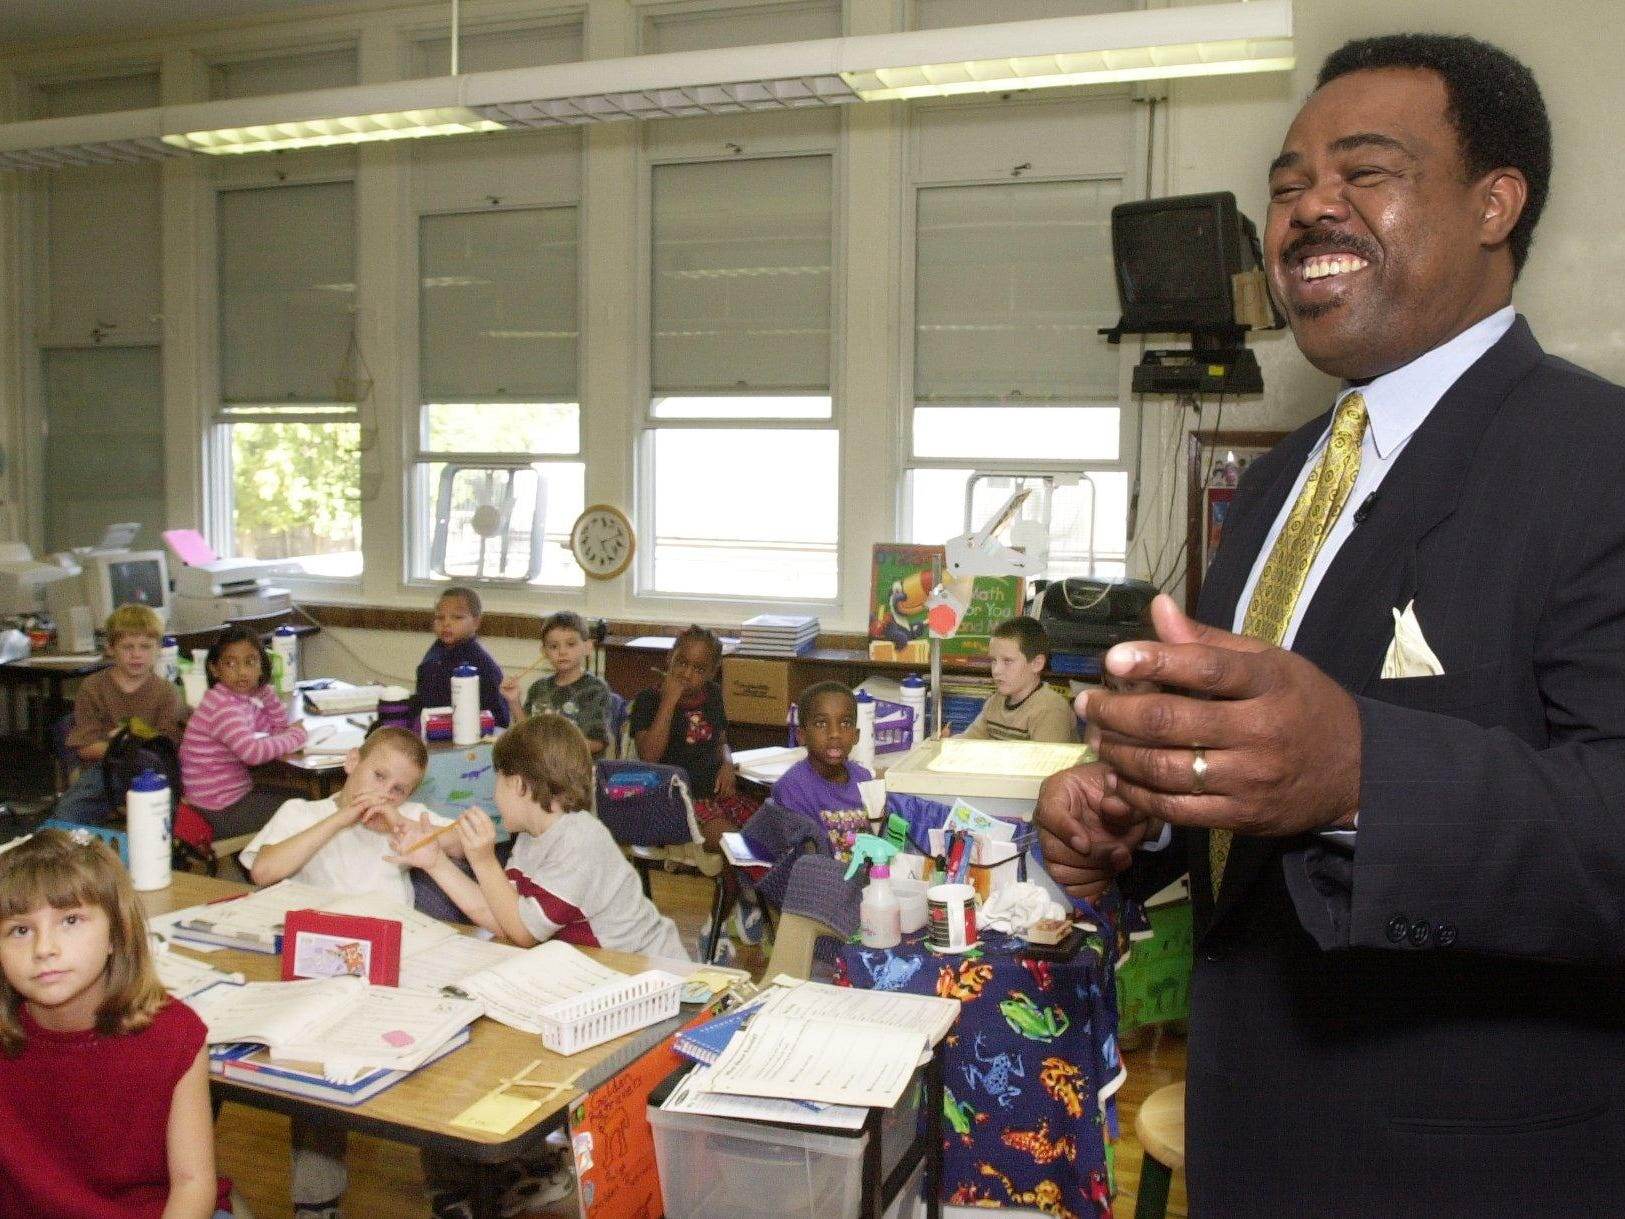 Edward Joyner, professor at Yale, and executive director of the development school program at Yale, tours one of the classrooms at Boyd Elementary.